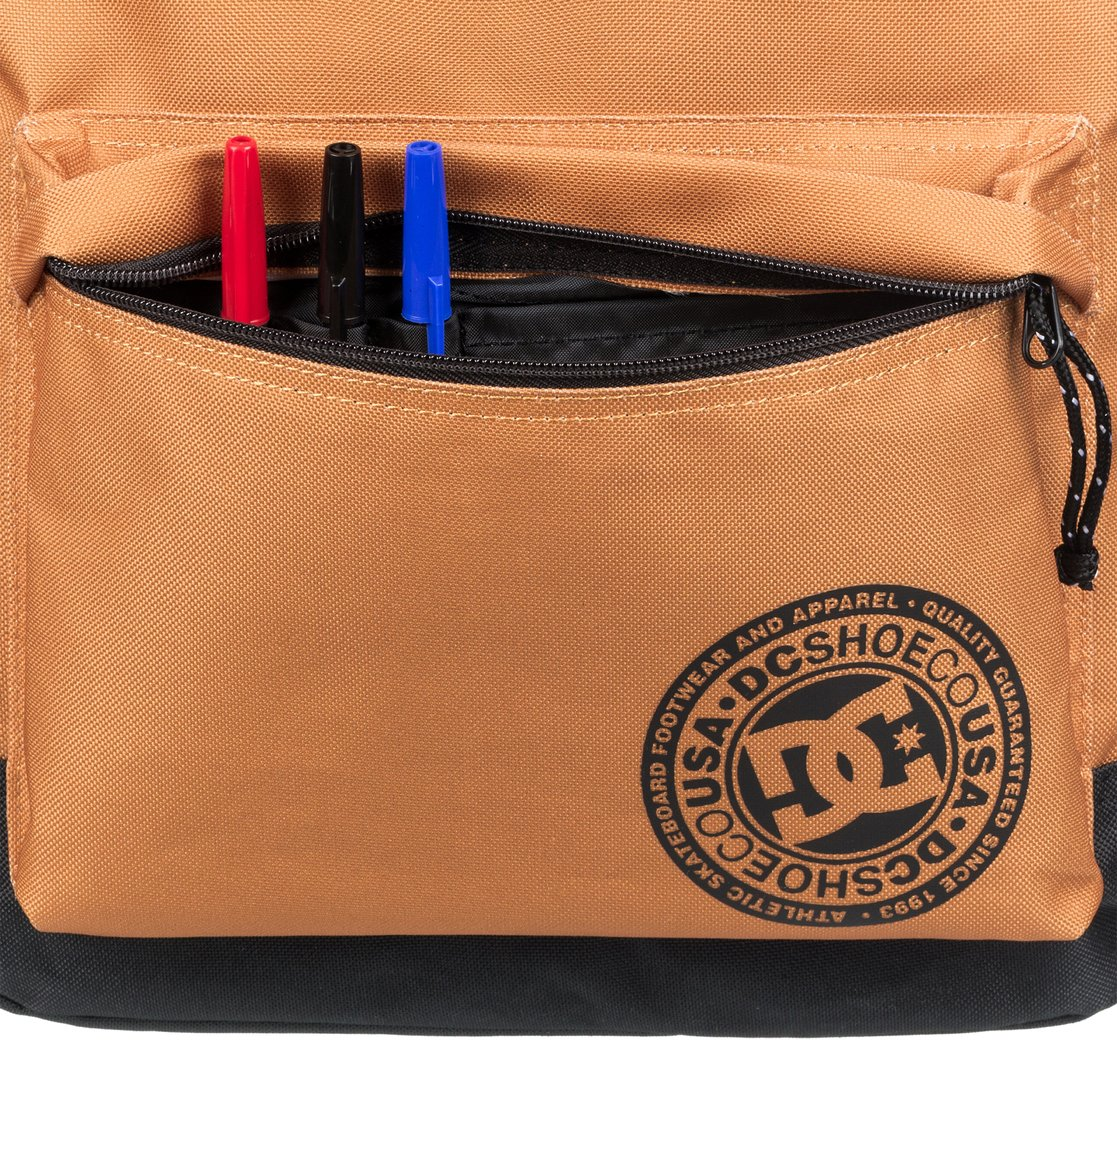 DC-Shoes-Backstack-18-5L-Sac-a-dos-taille-moyenne-pour-Homme-EDYBP03180 miniature 15